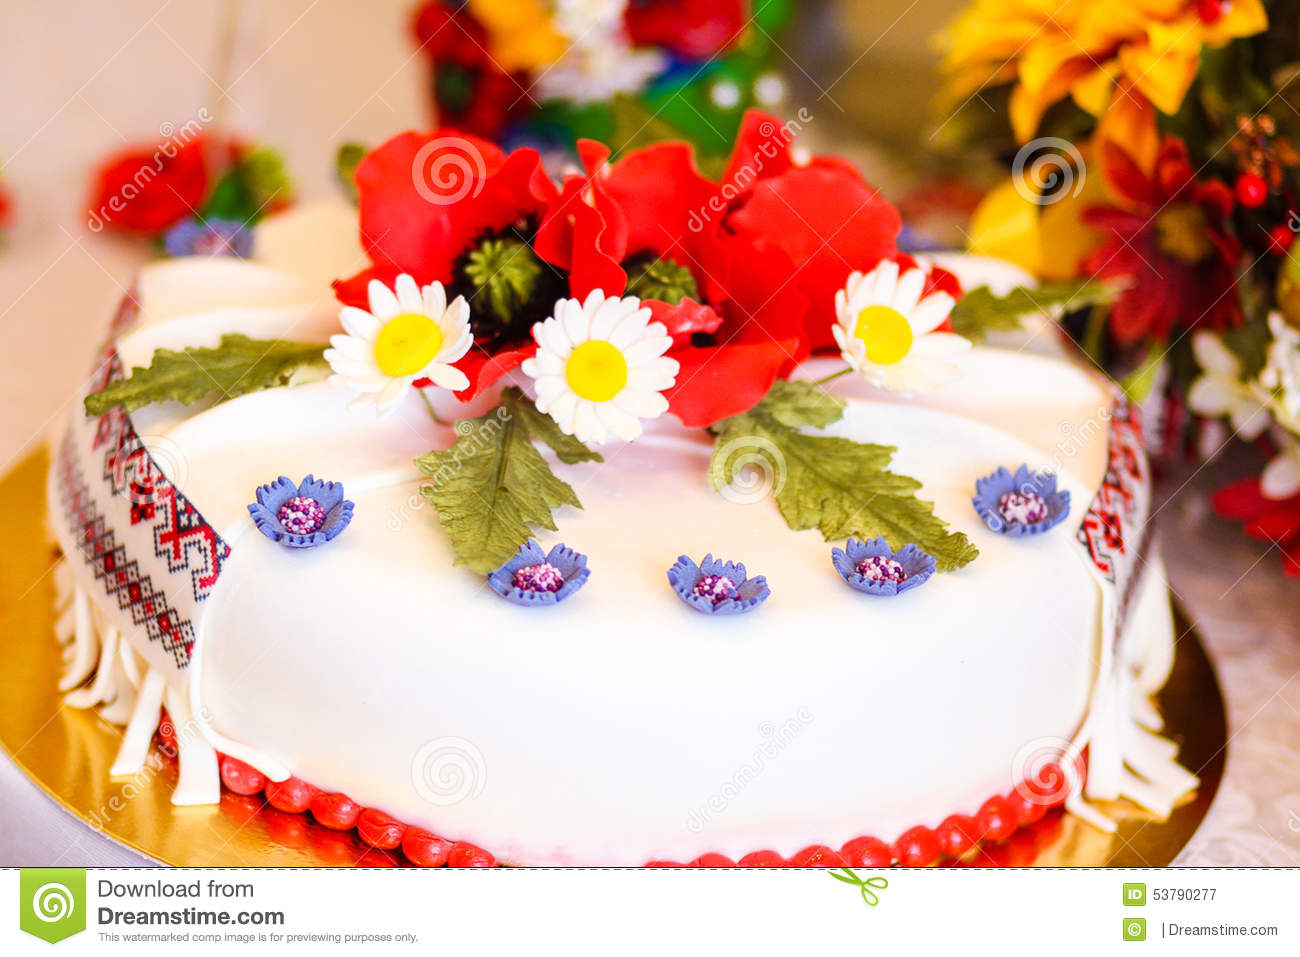 Ukrainian Birthday Cake